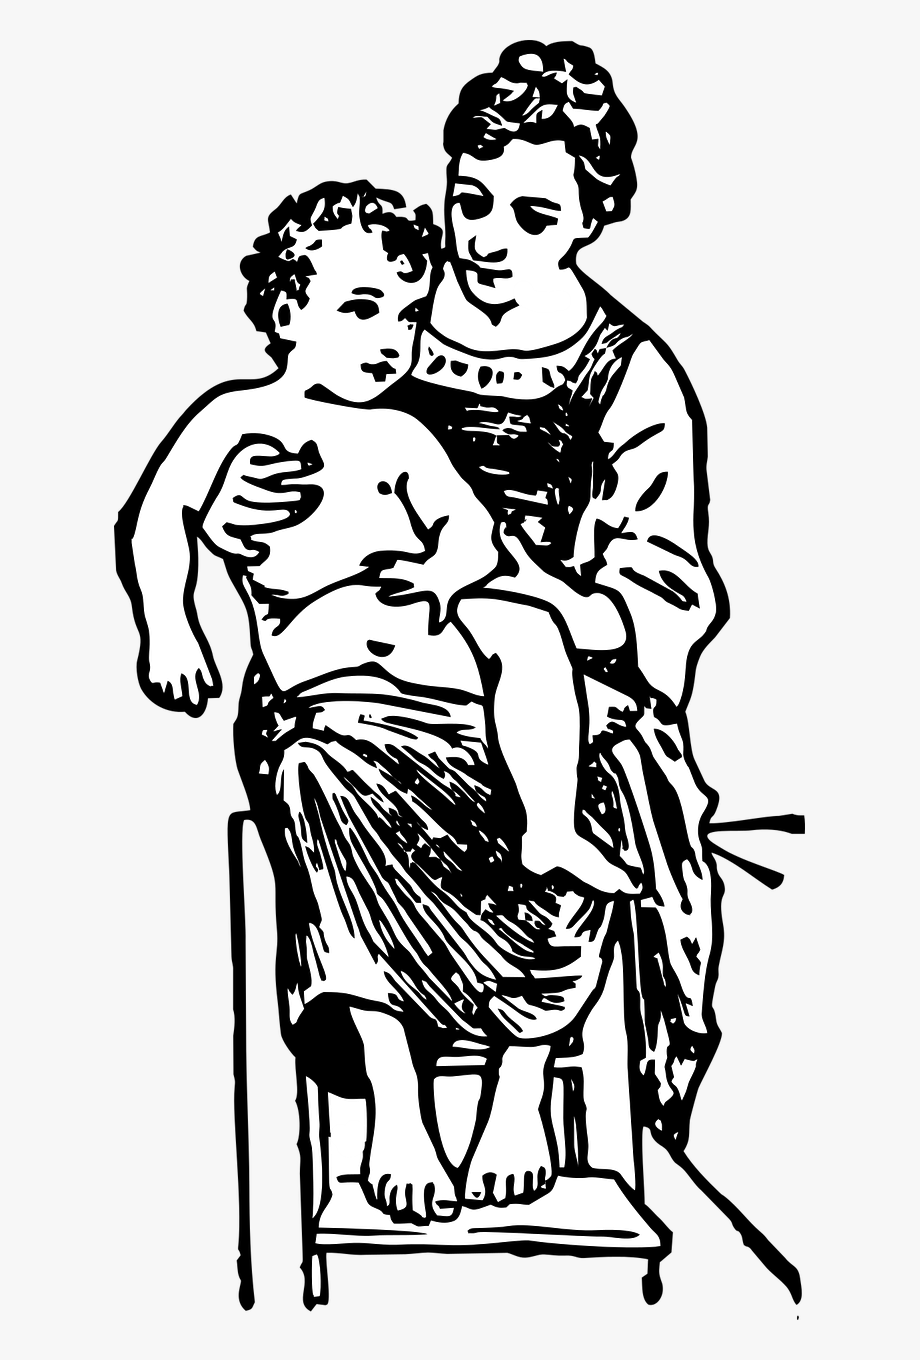 Care family love woman. Free black and white clipart mother and child